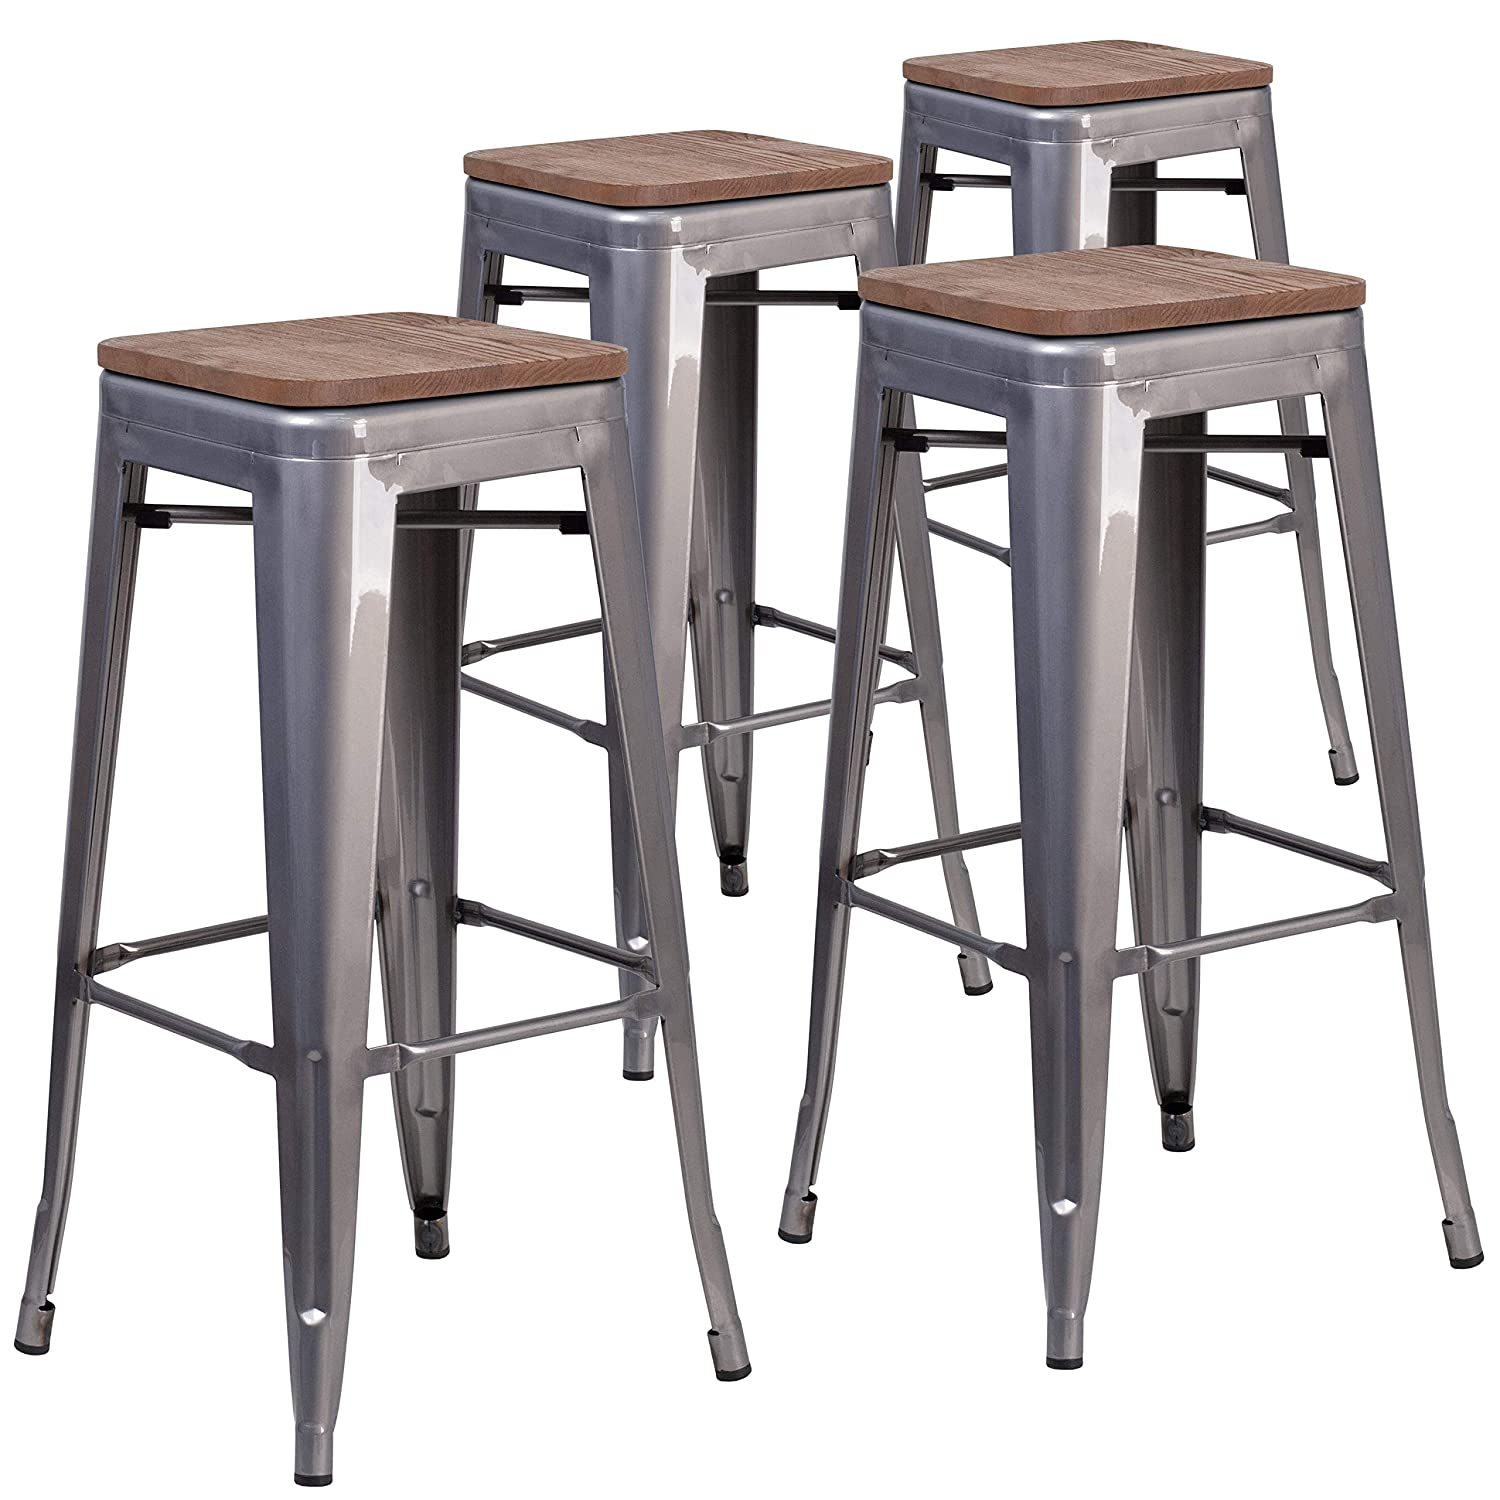 Amazon com flash furniture 4 pk 30 high backless clear coated metal barstool with square wood seat kitchen dining